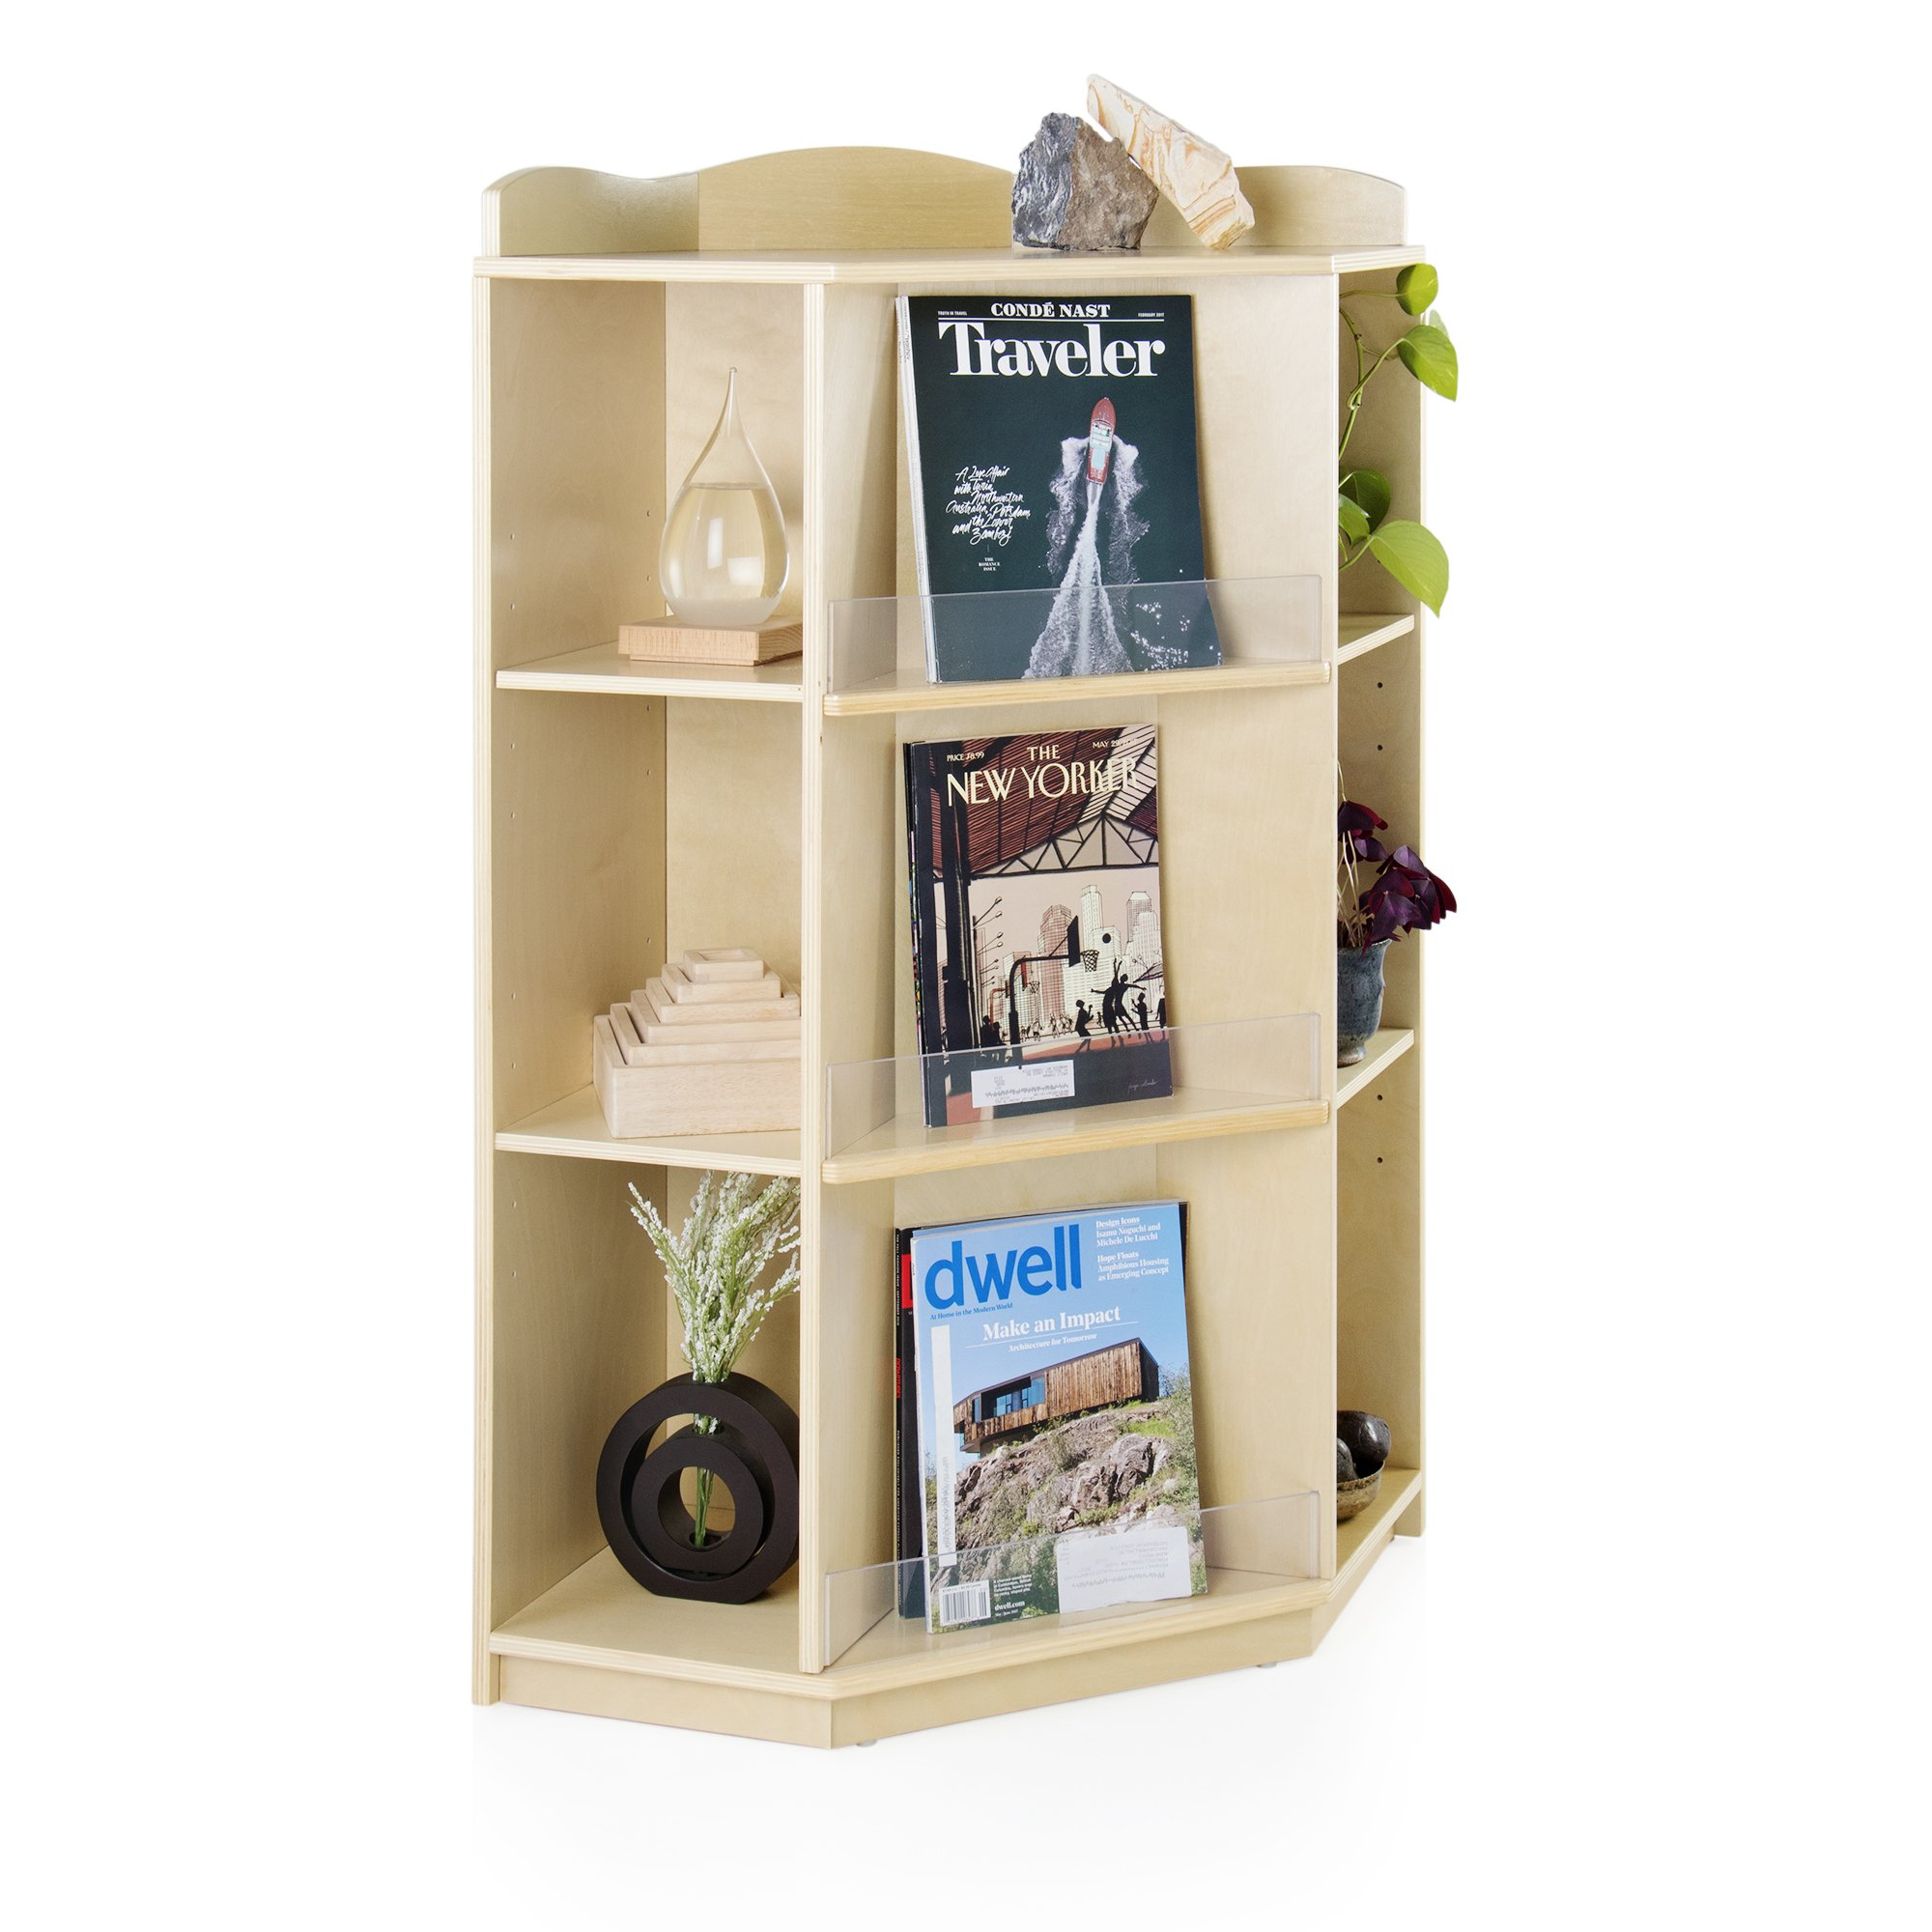 Corner Book Nook School Supply Kids Furniture - Bookcase, Book Display and Storage